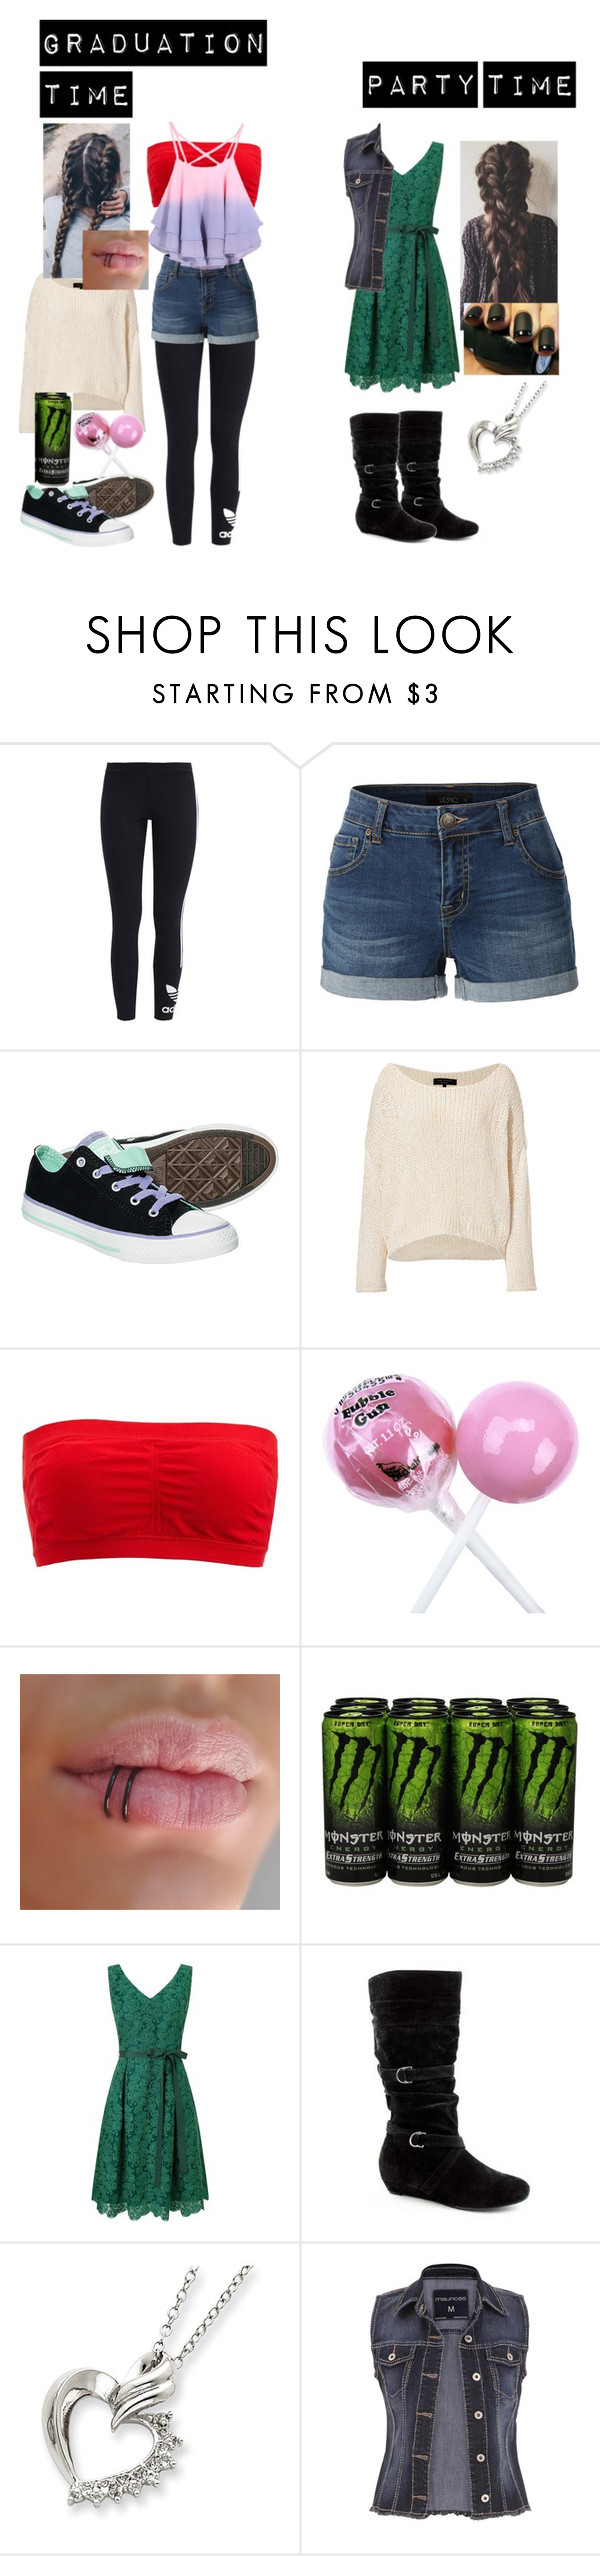 """OMG rtd"" by bubble-loves-you ❤ liked on Polyvore featuring adidas Originals, LE3NO, Converse, rag & bone, Charlotte Russe, Phase Eight and maurices"